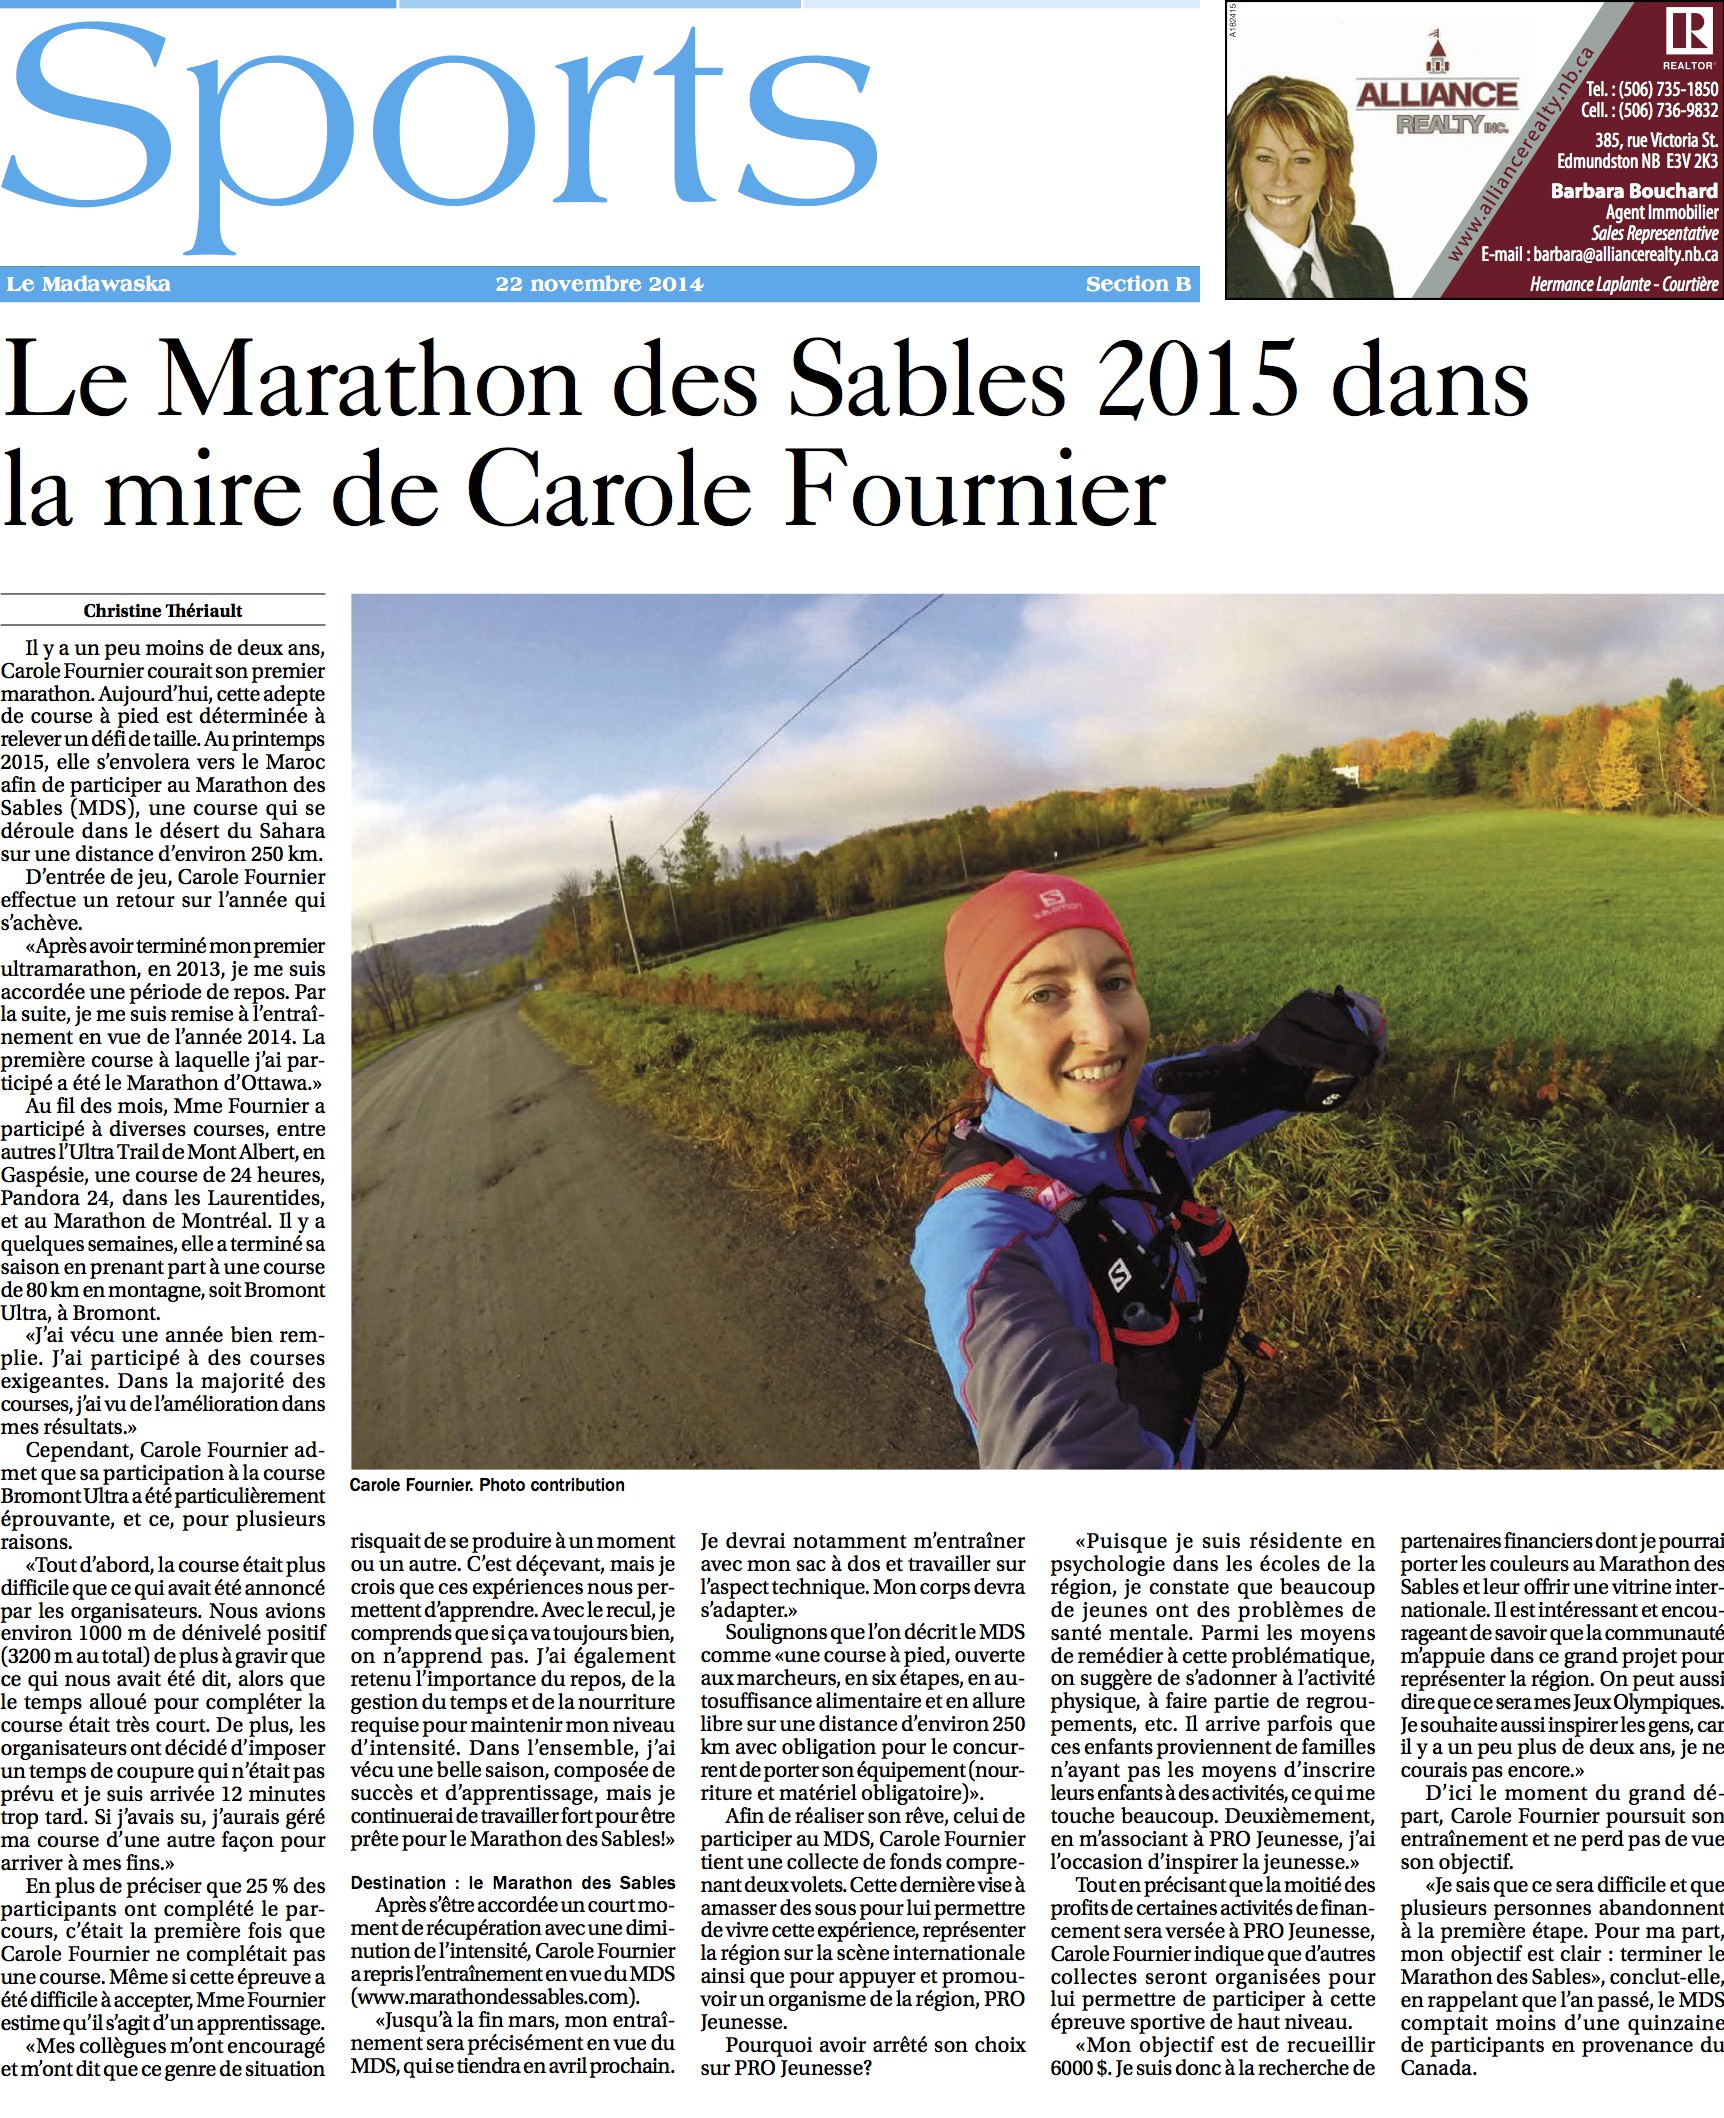 Journal Le Madawaska - 22 novembre 2014